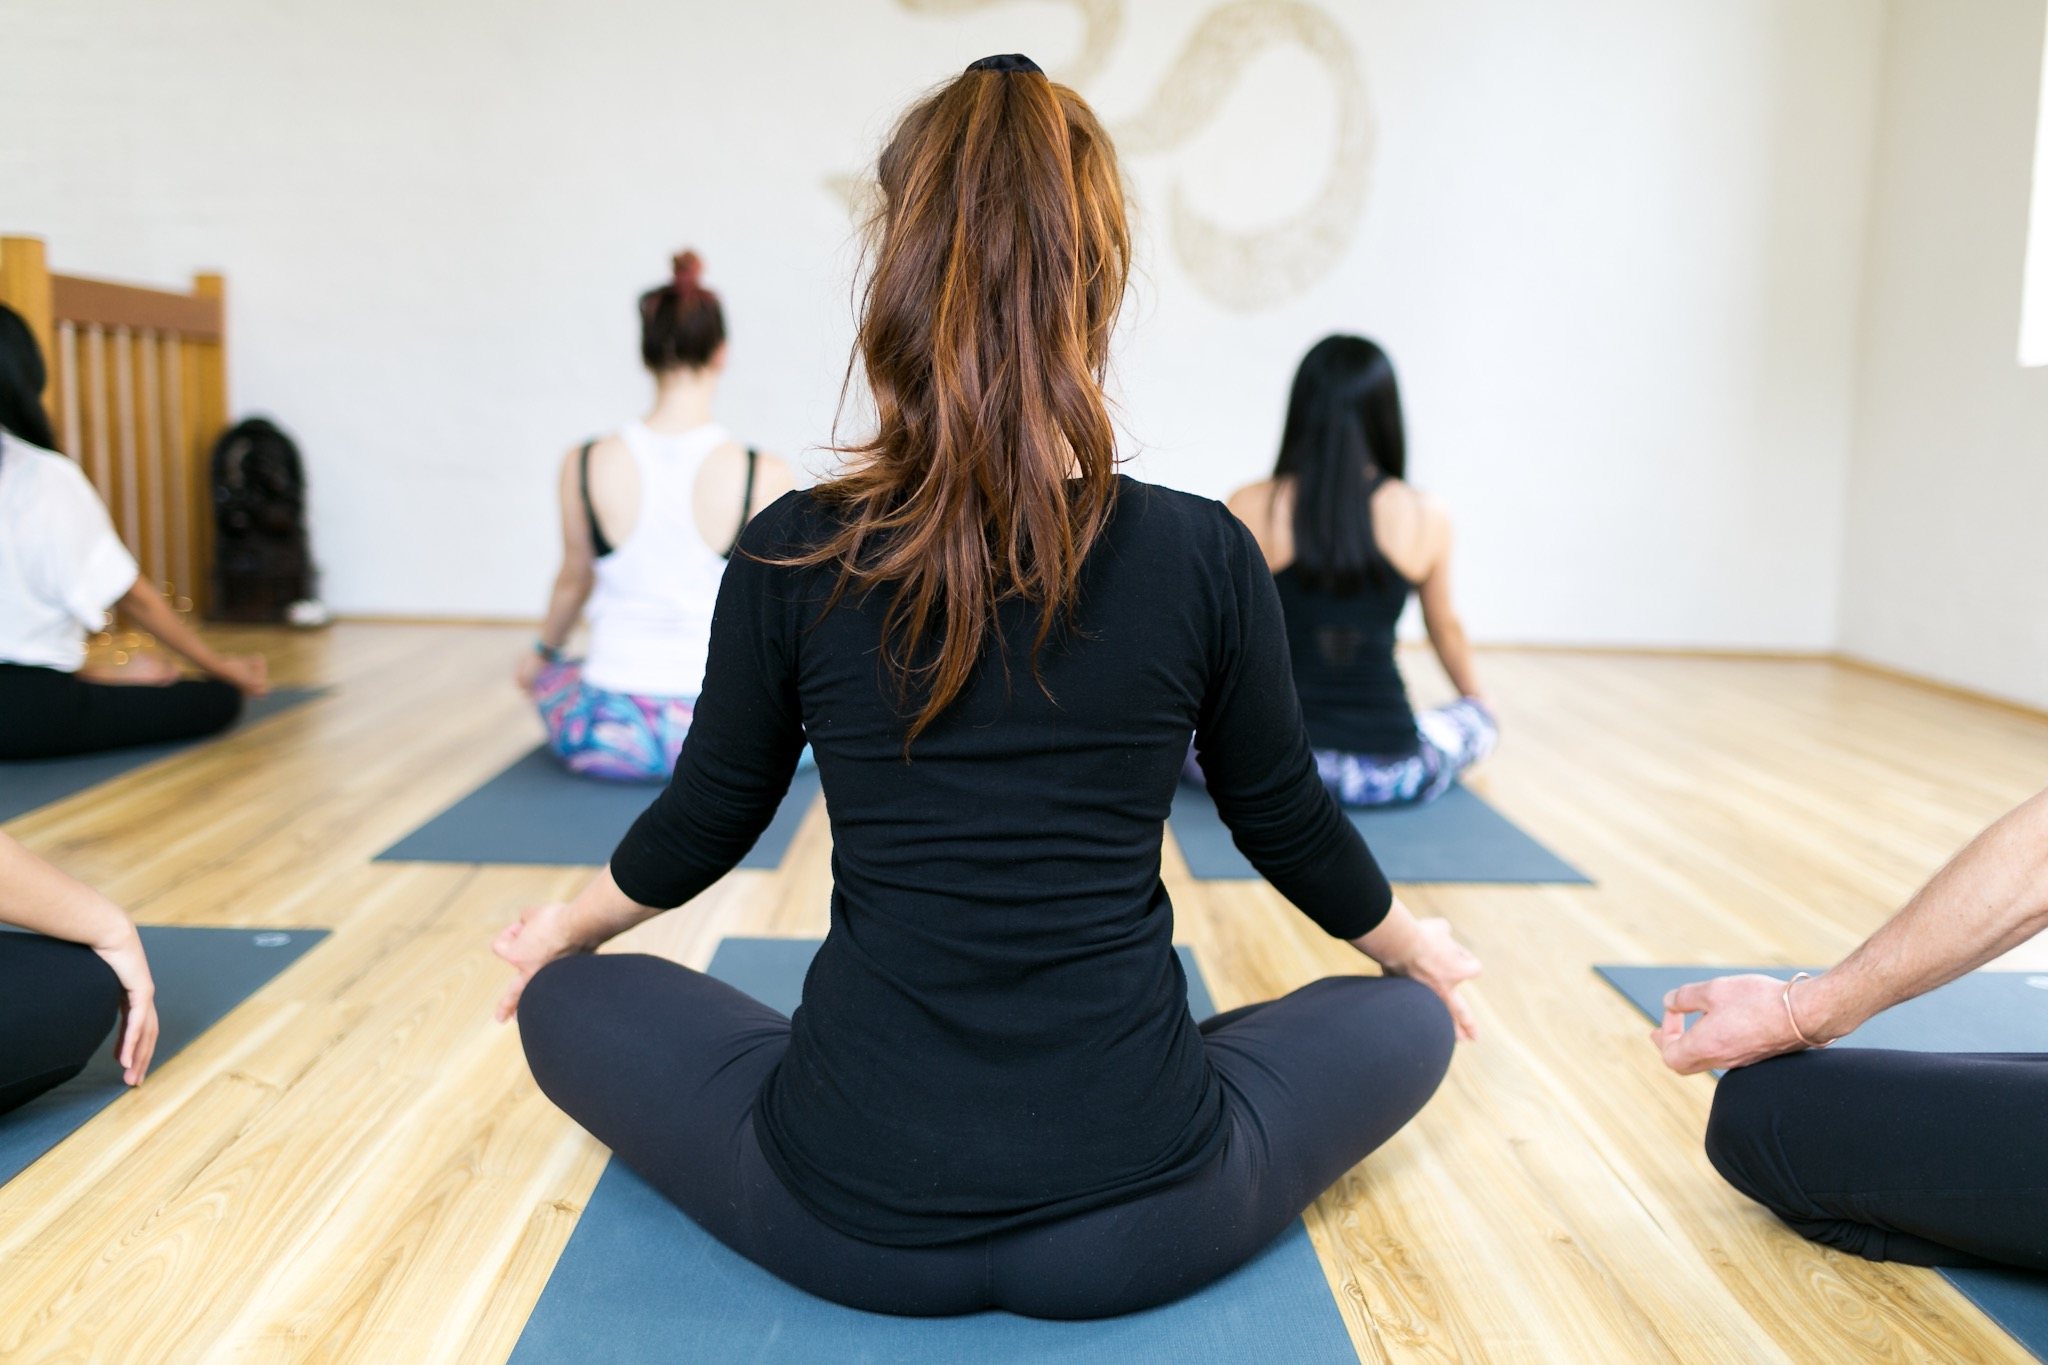 Become The Best Yoga Teacher You Can Be. - Find the leader within.